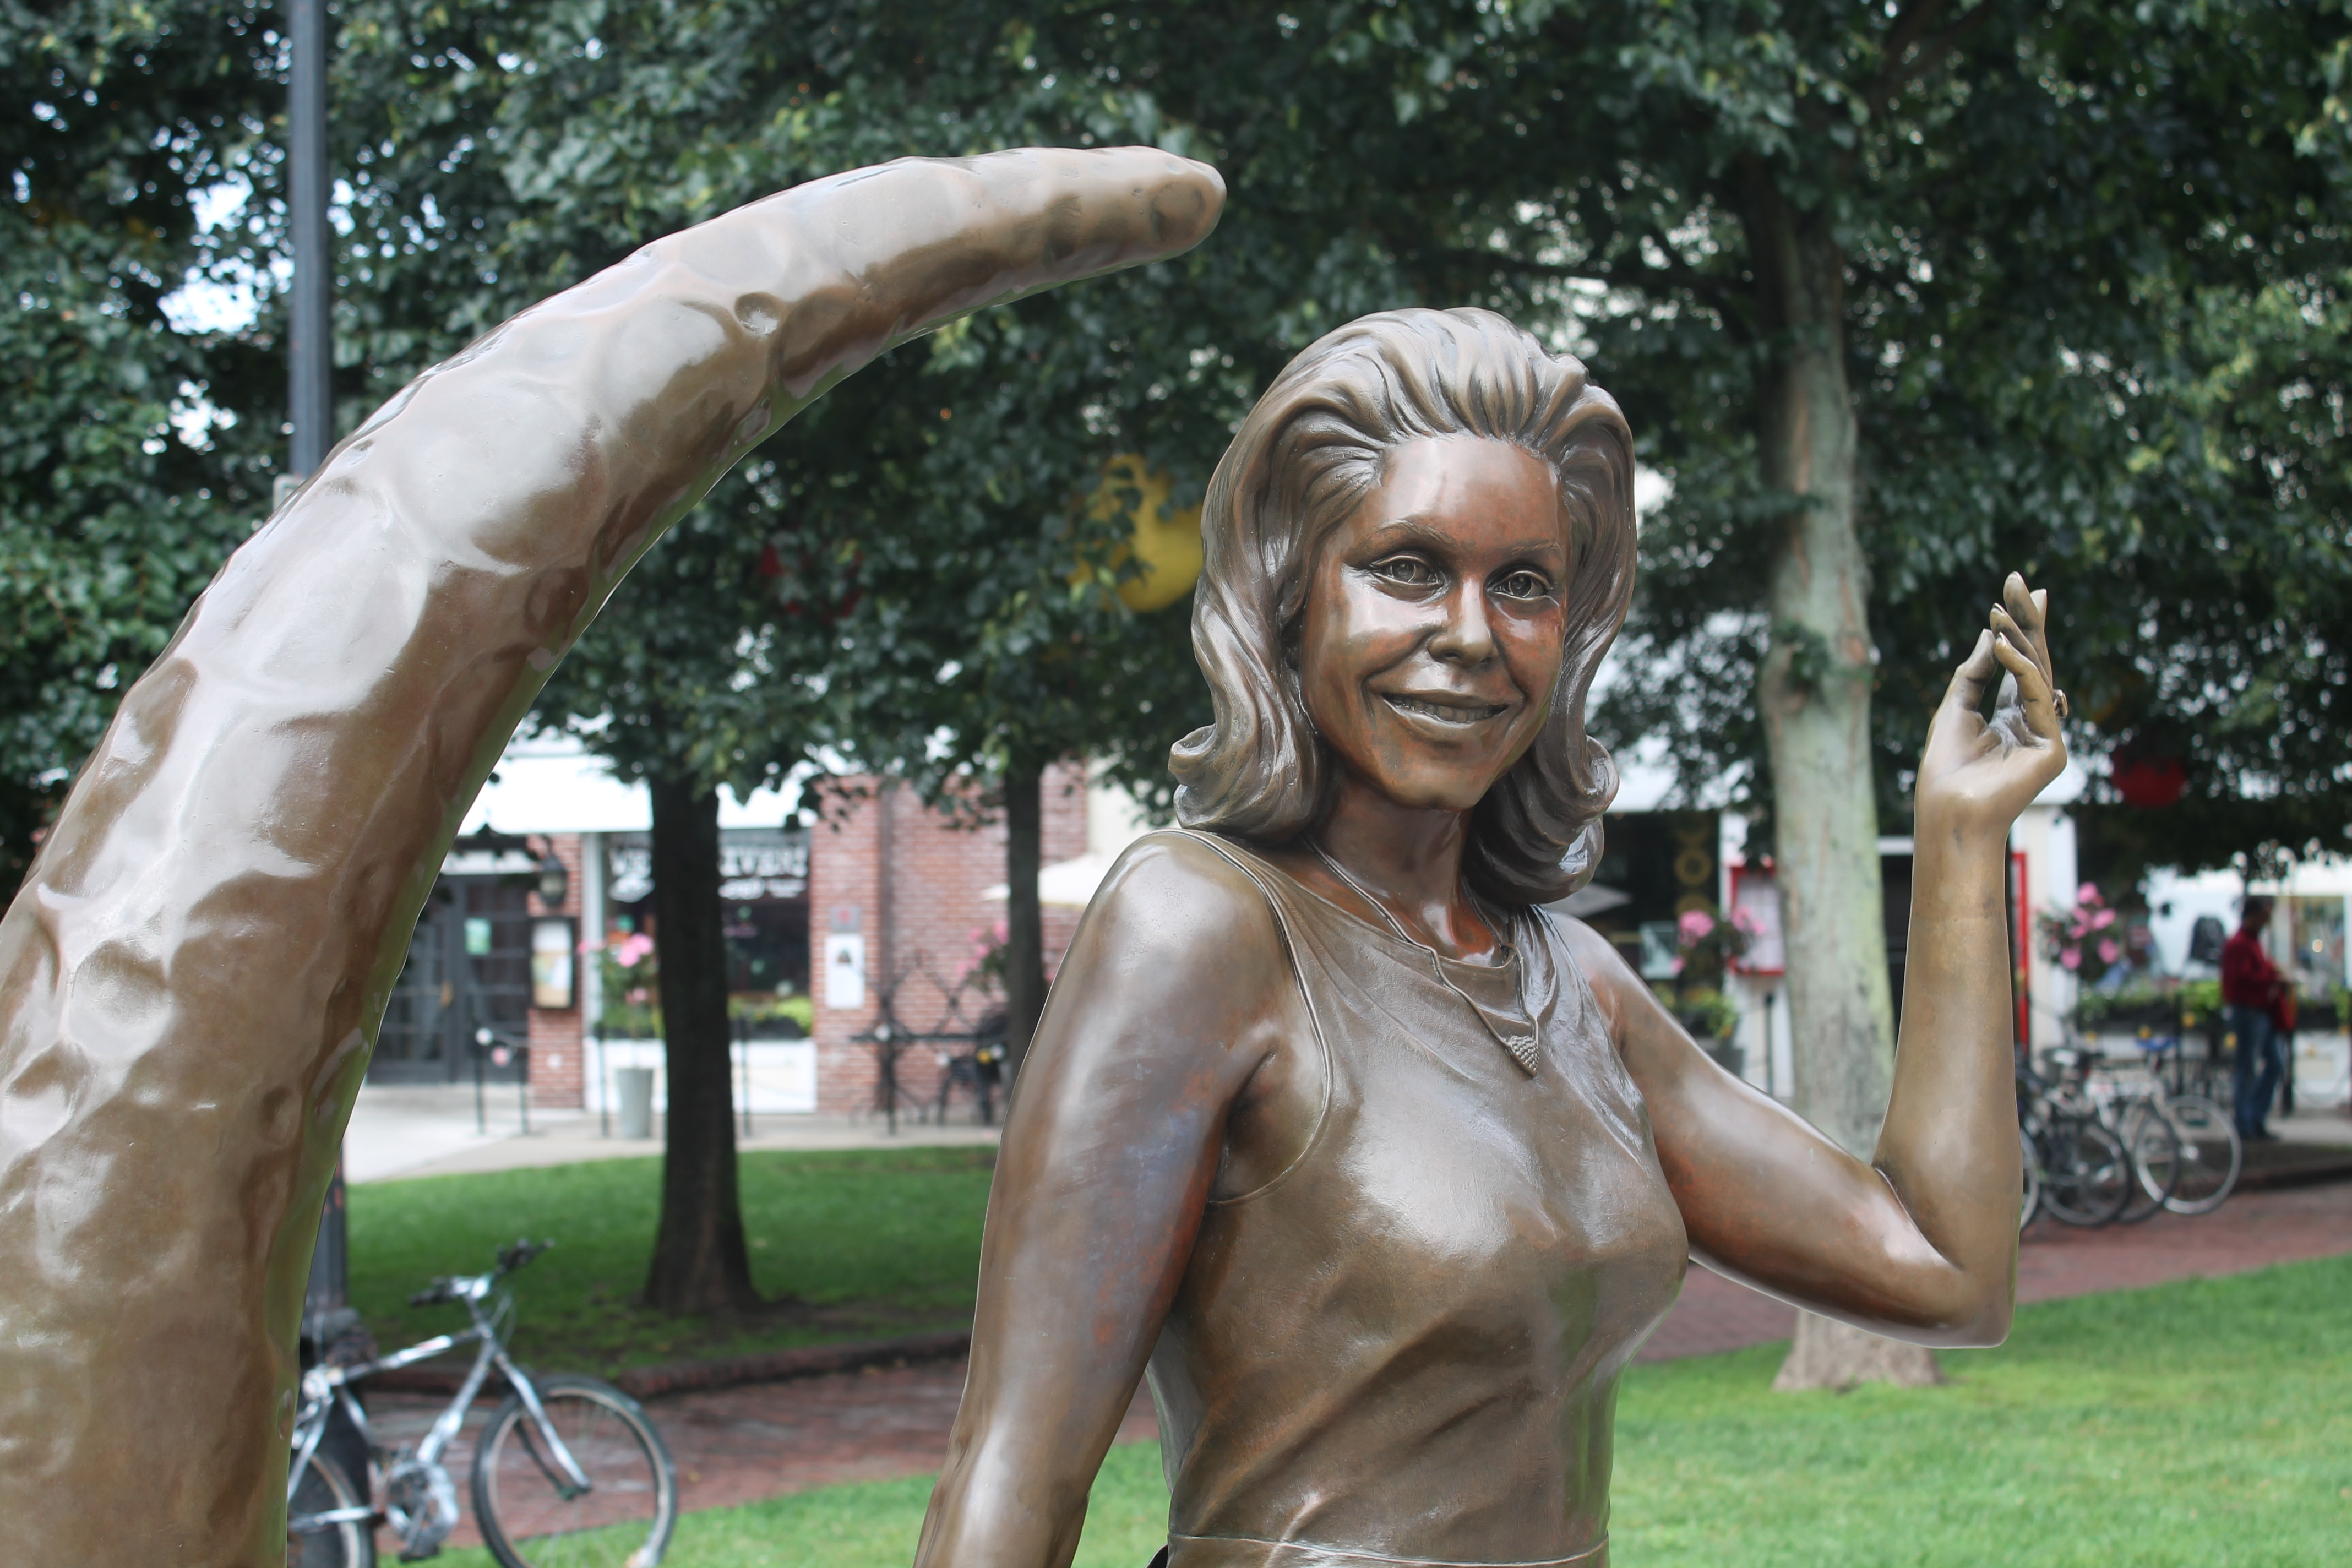 TV Land Paid $75,000 for the Statue